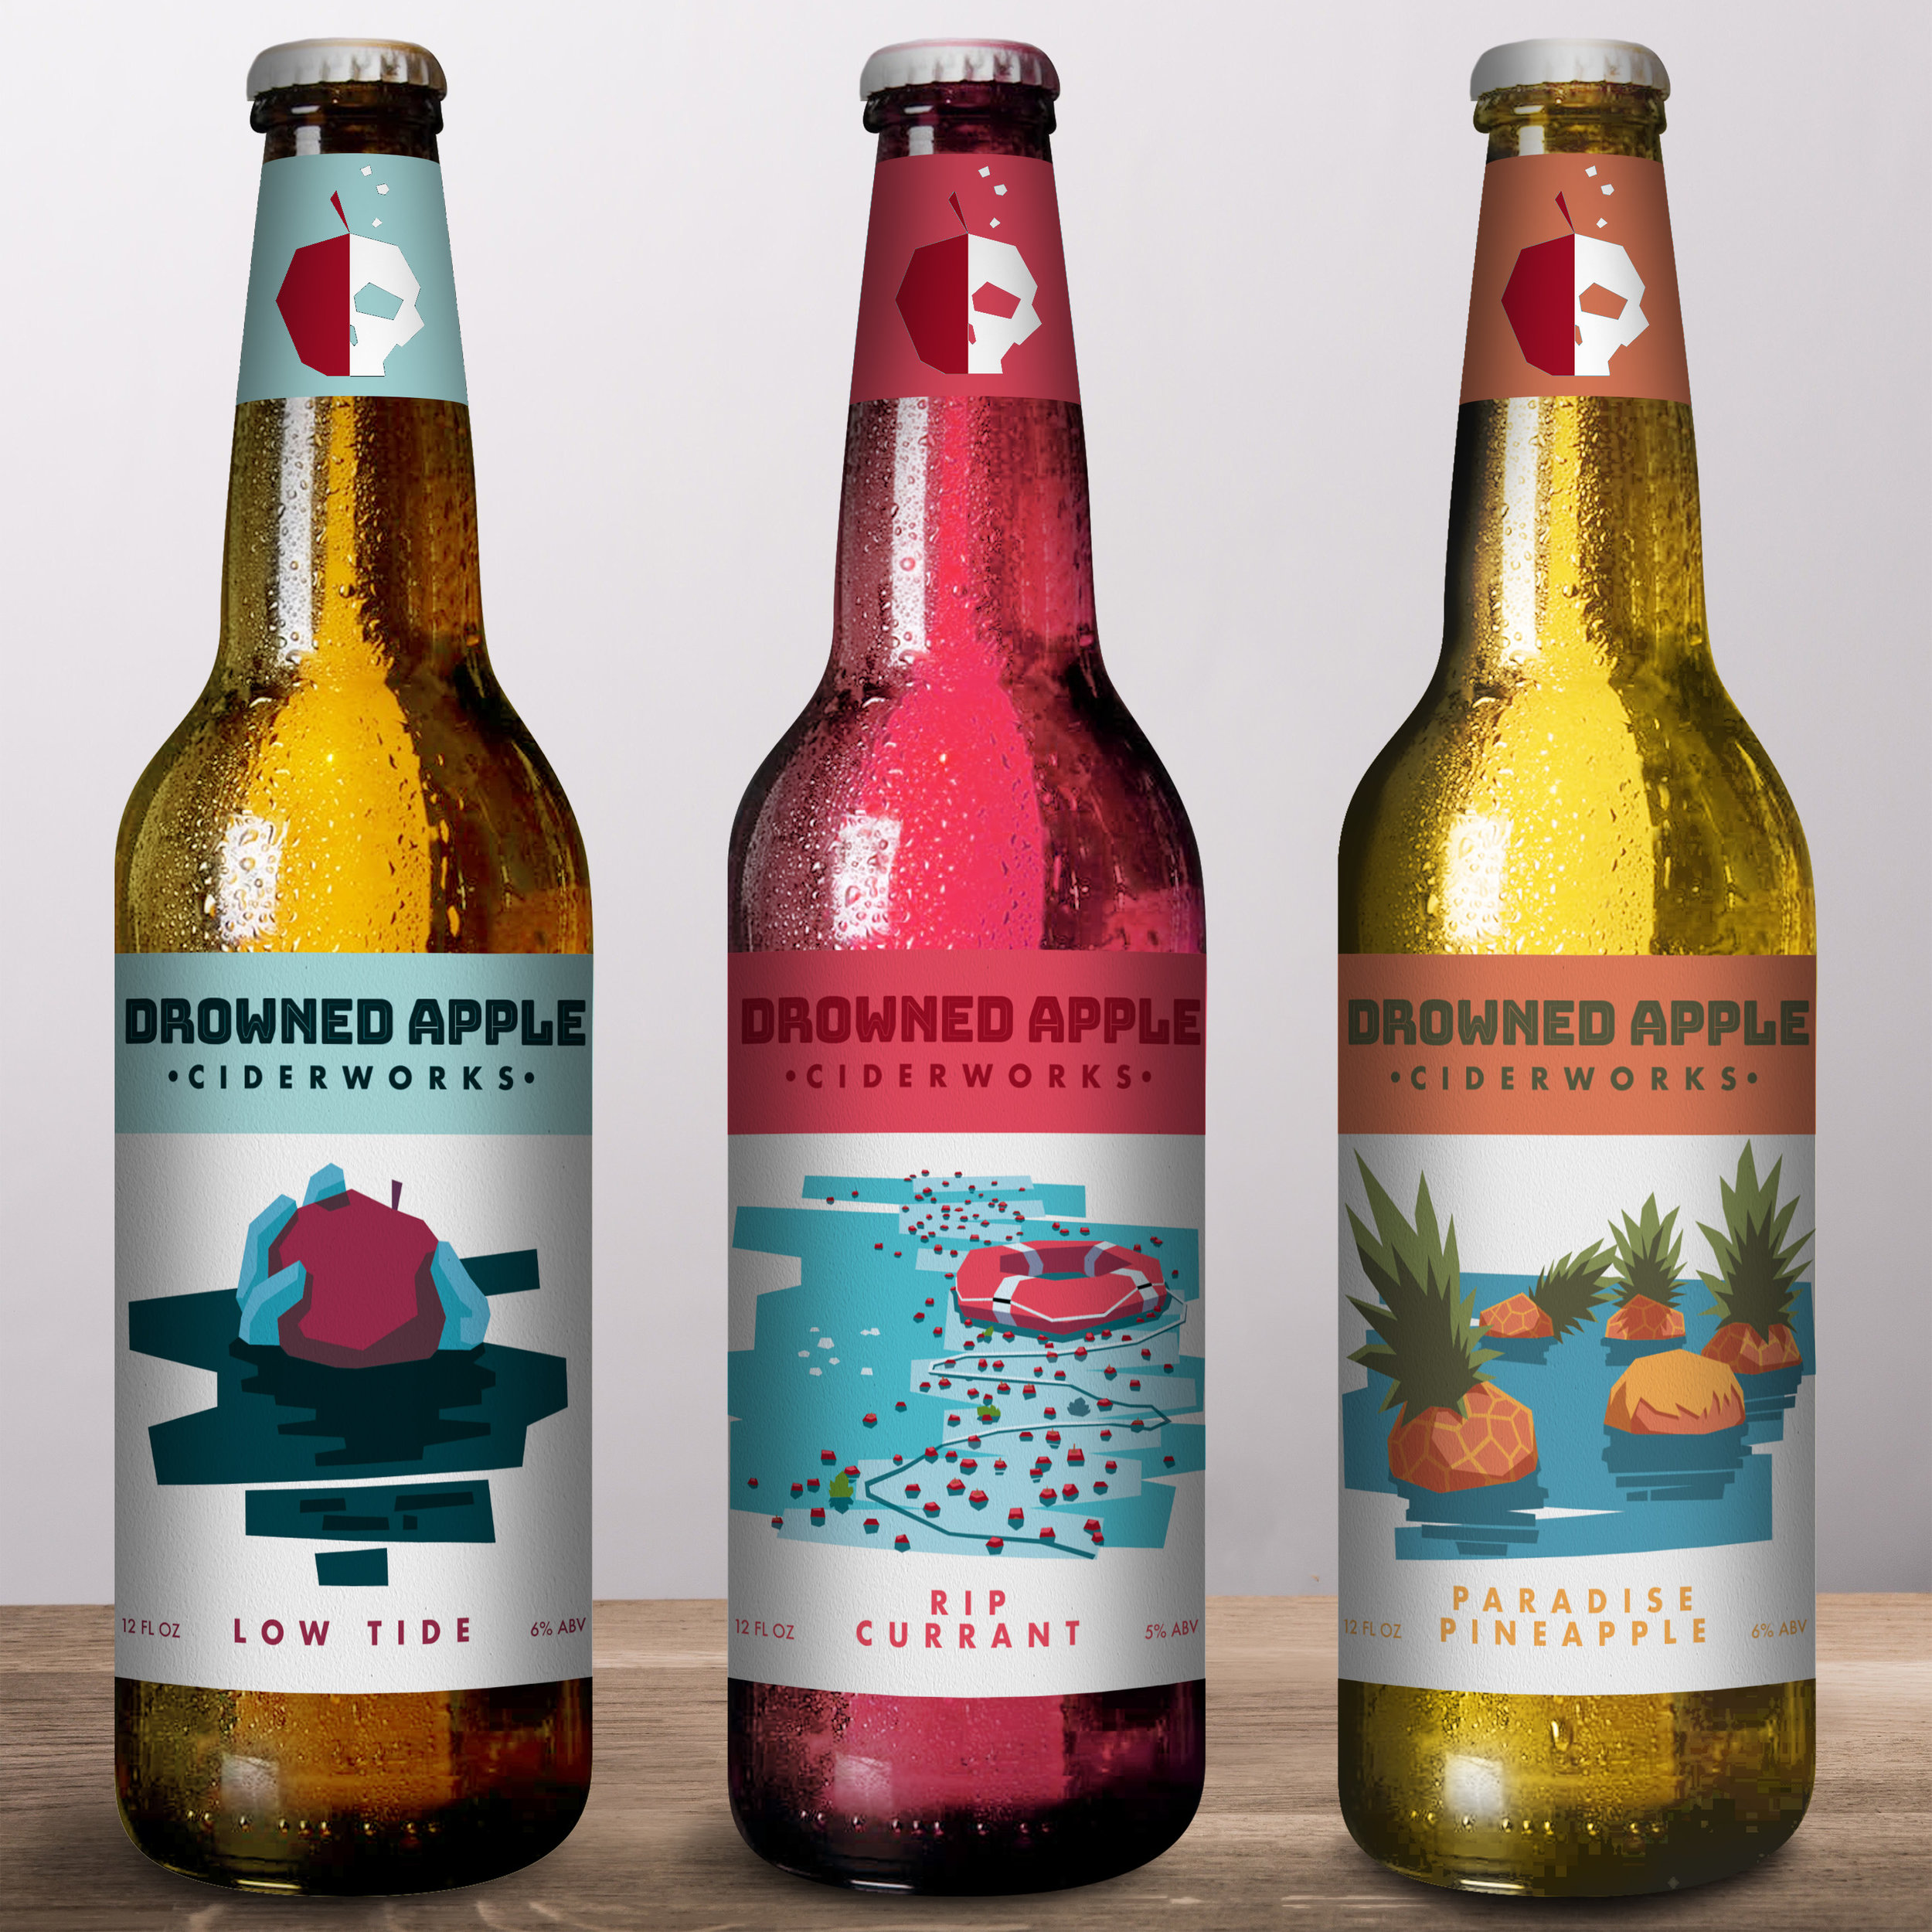 Drowned Apple Ciderworks - Beverage branding project